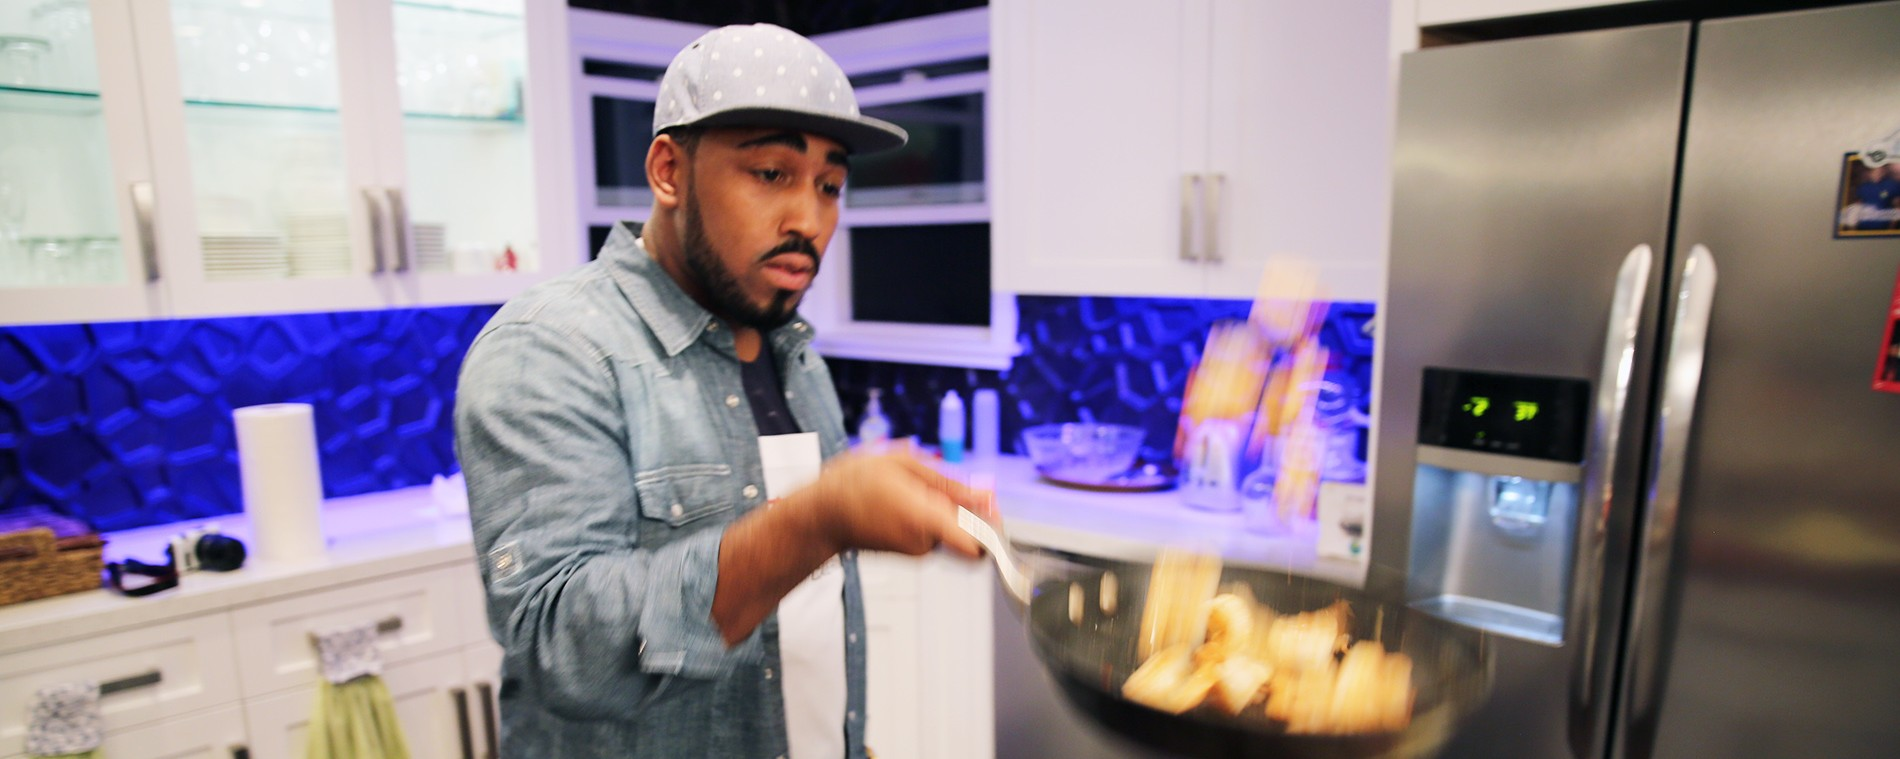 How-To: Make Egg Rolls with Chef E-Dubble